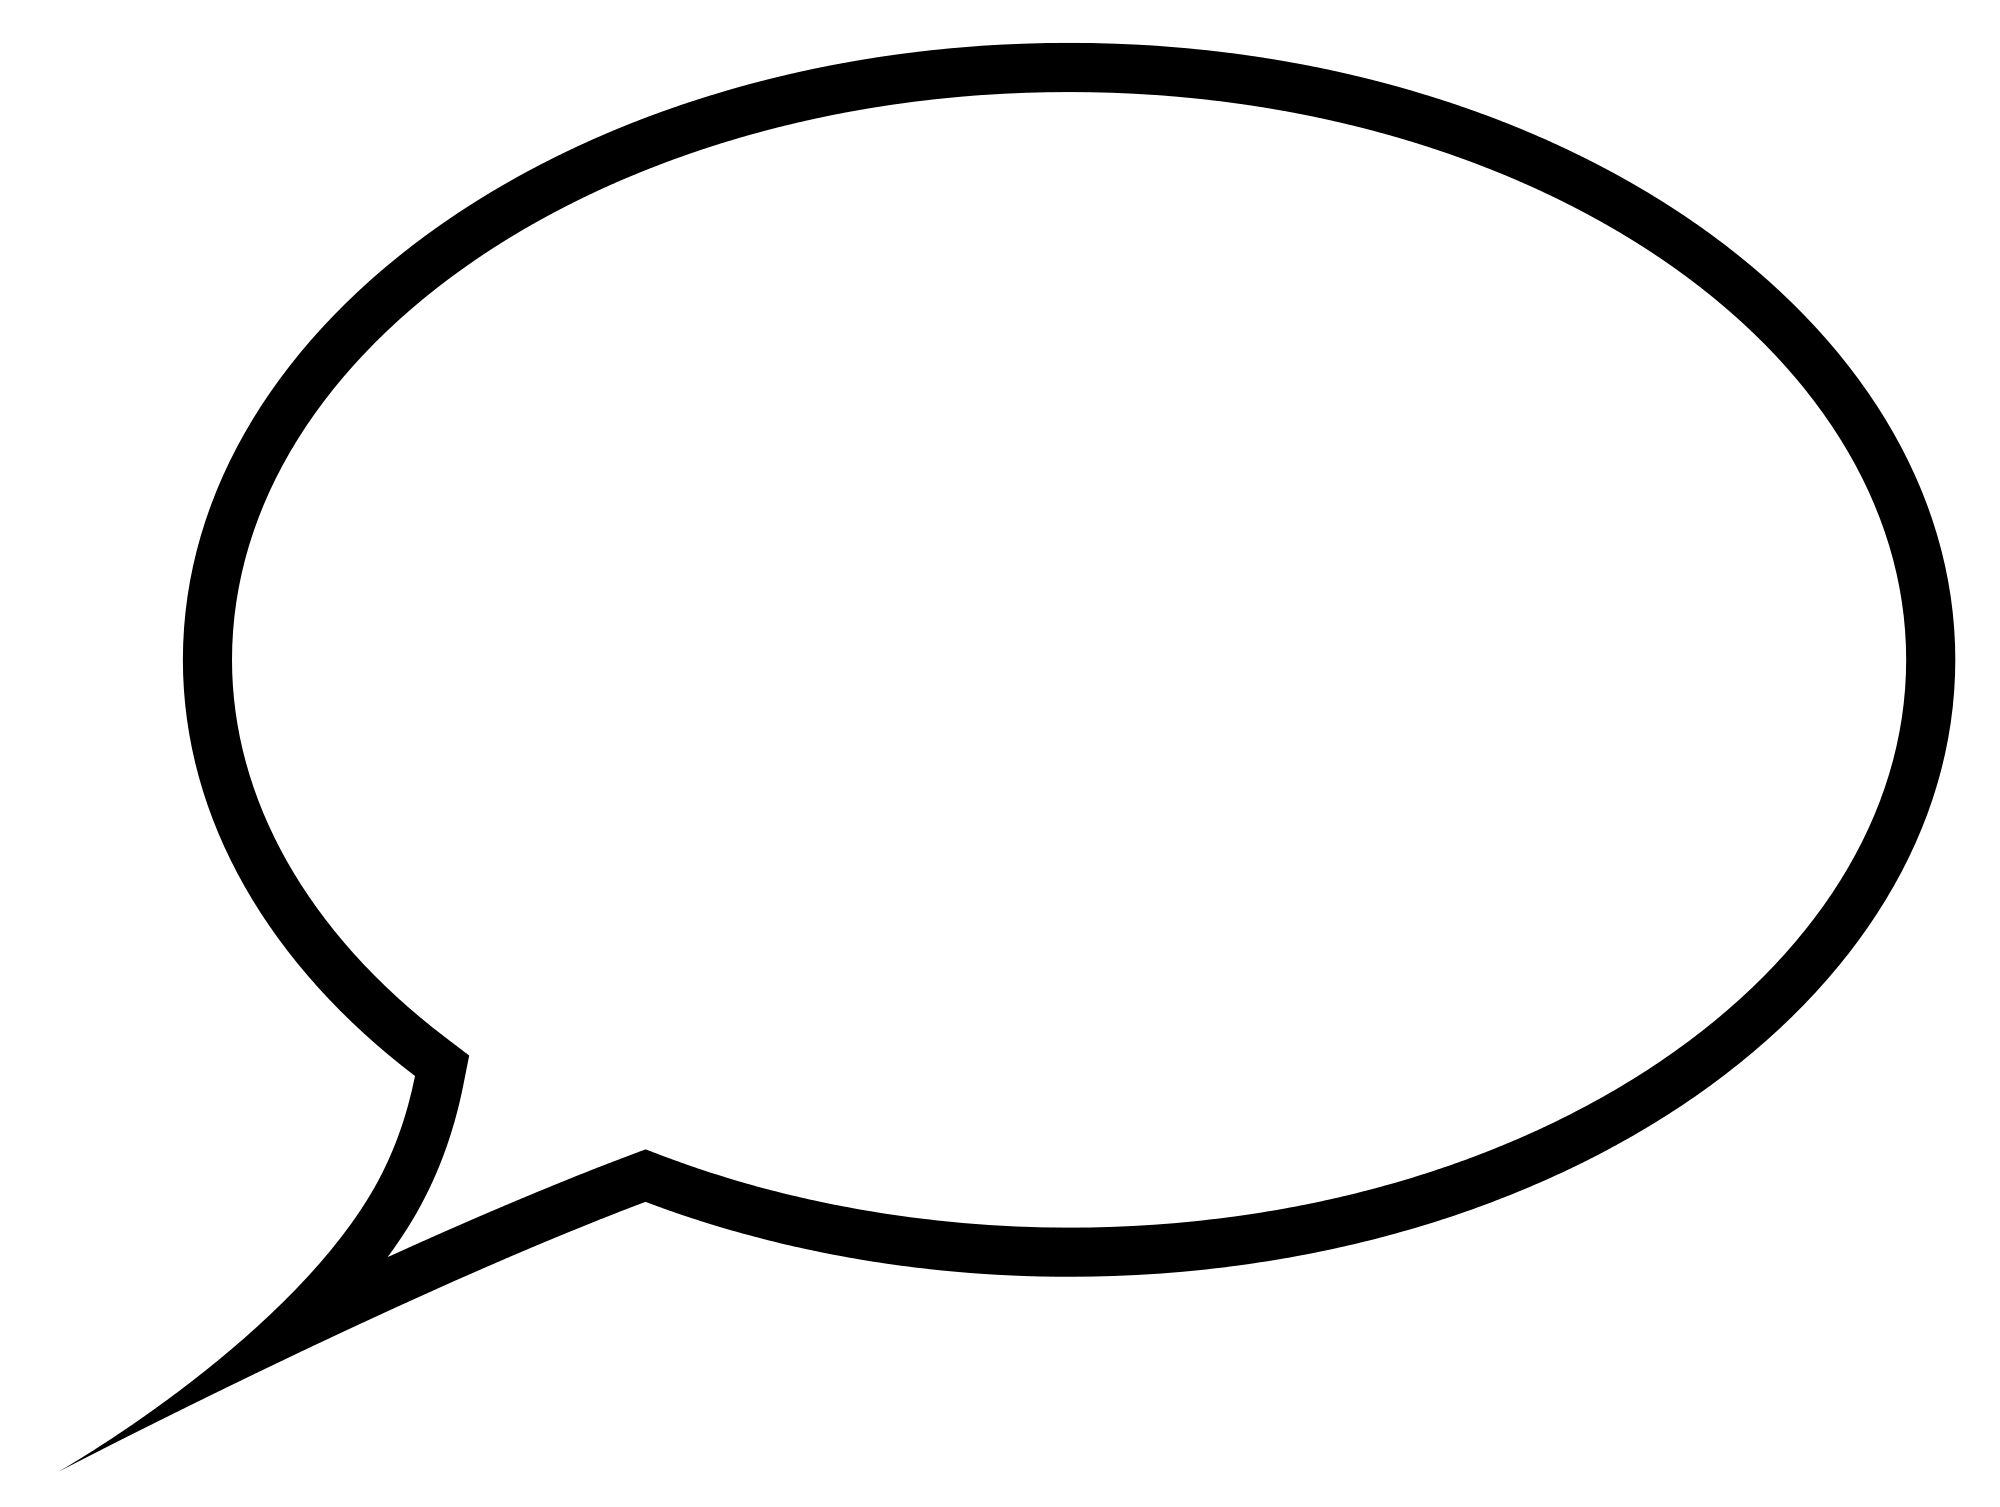 comic speech bubble png